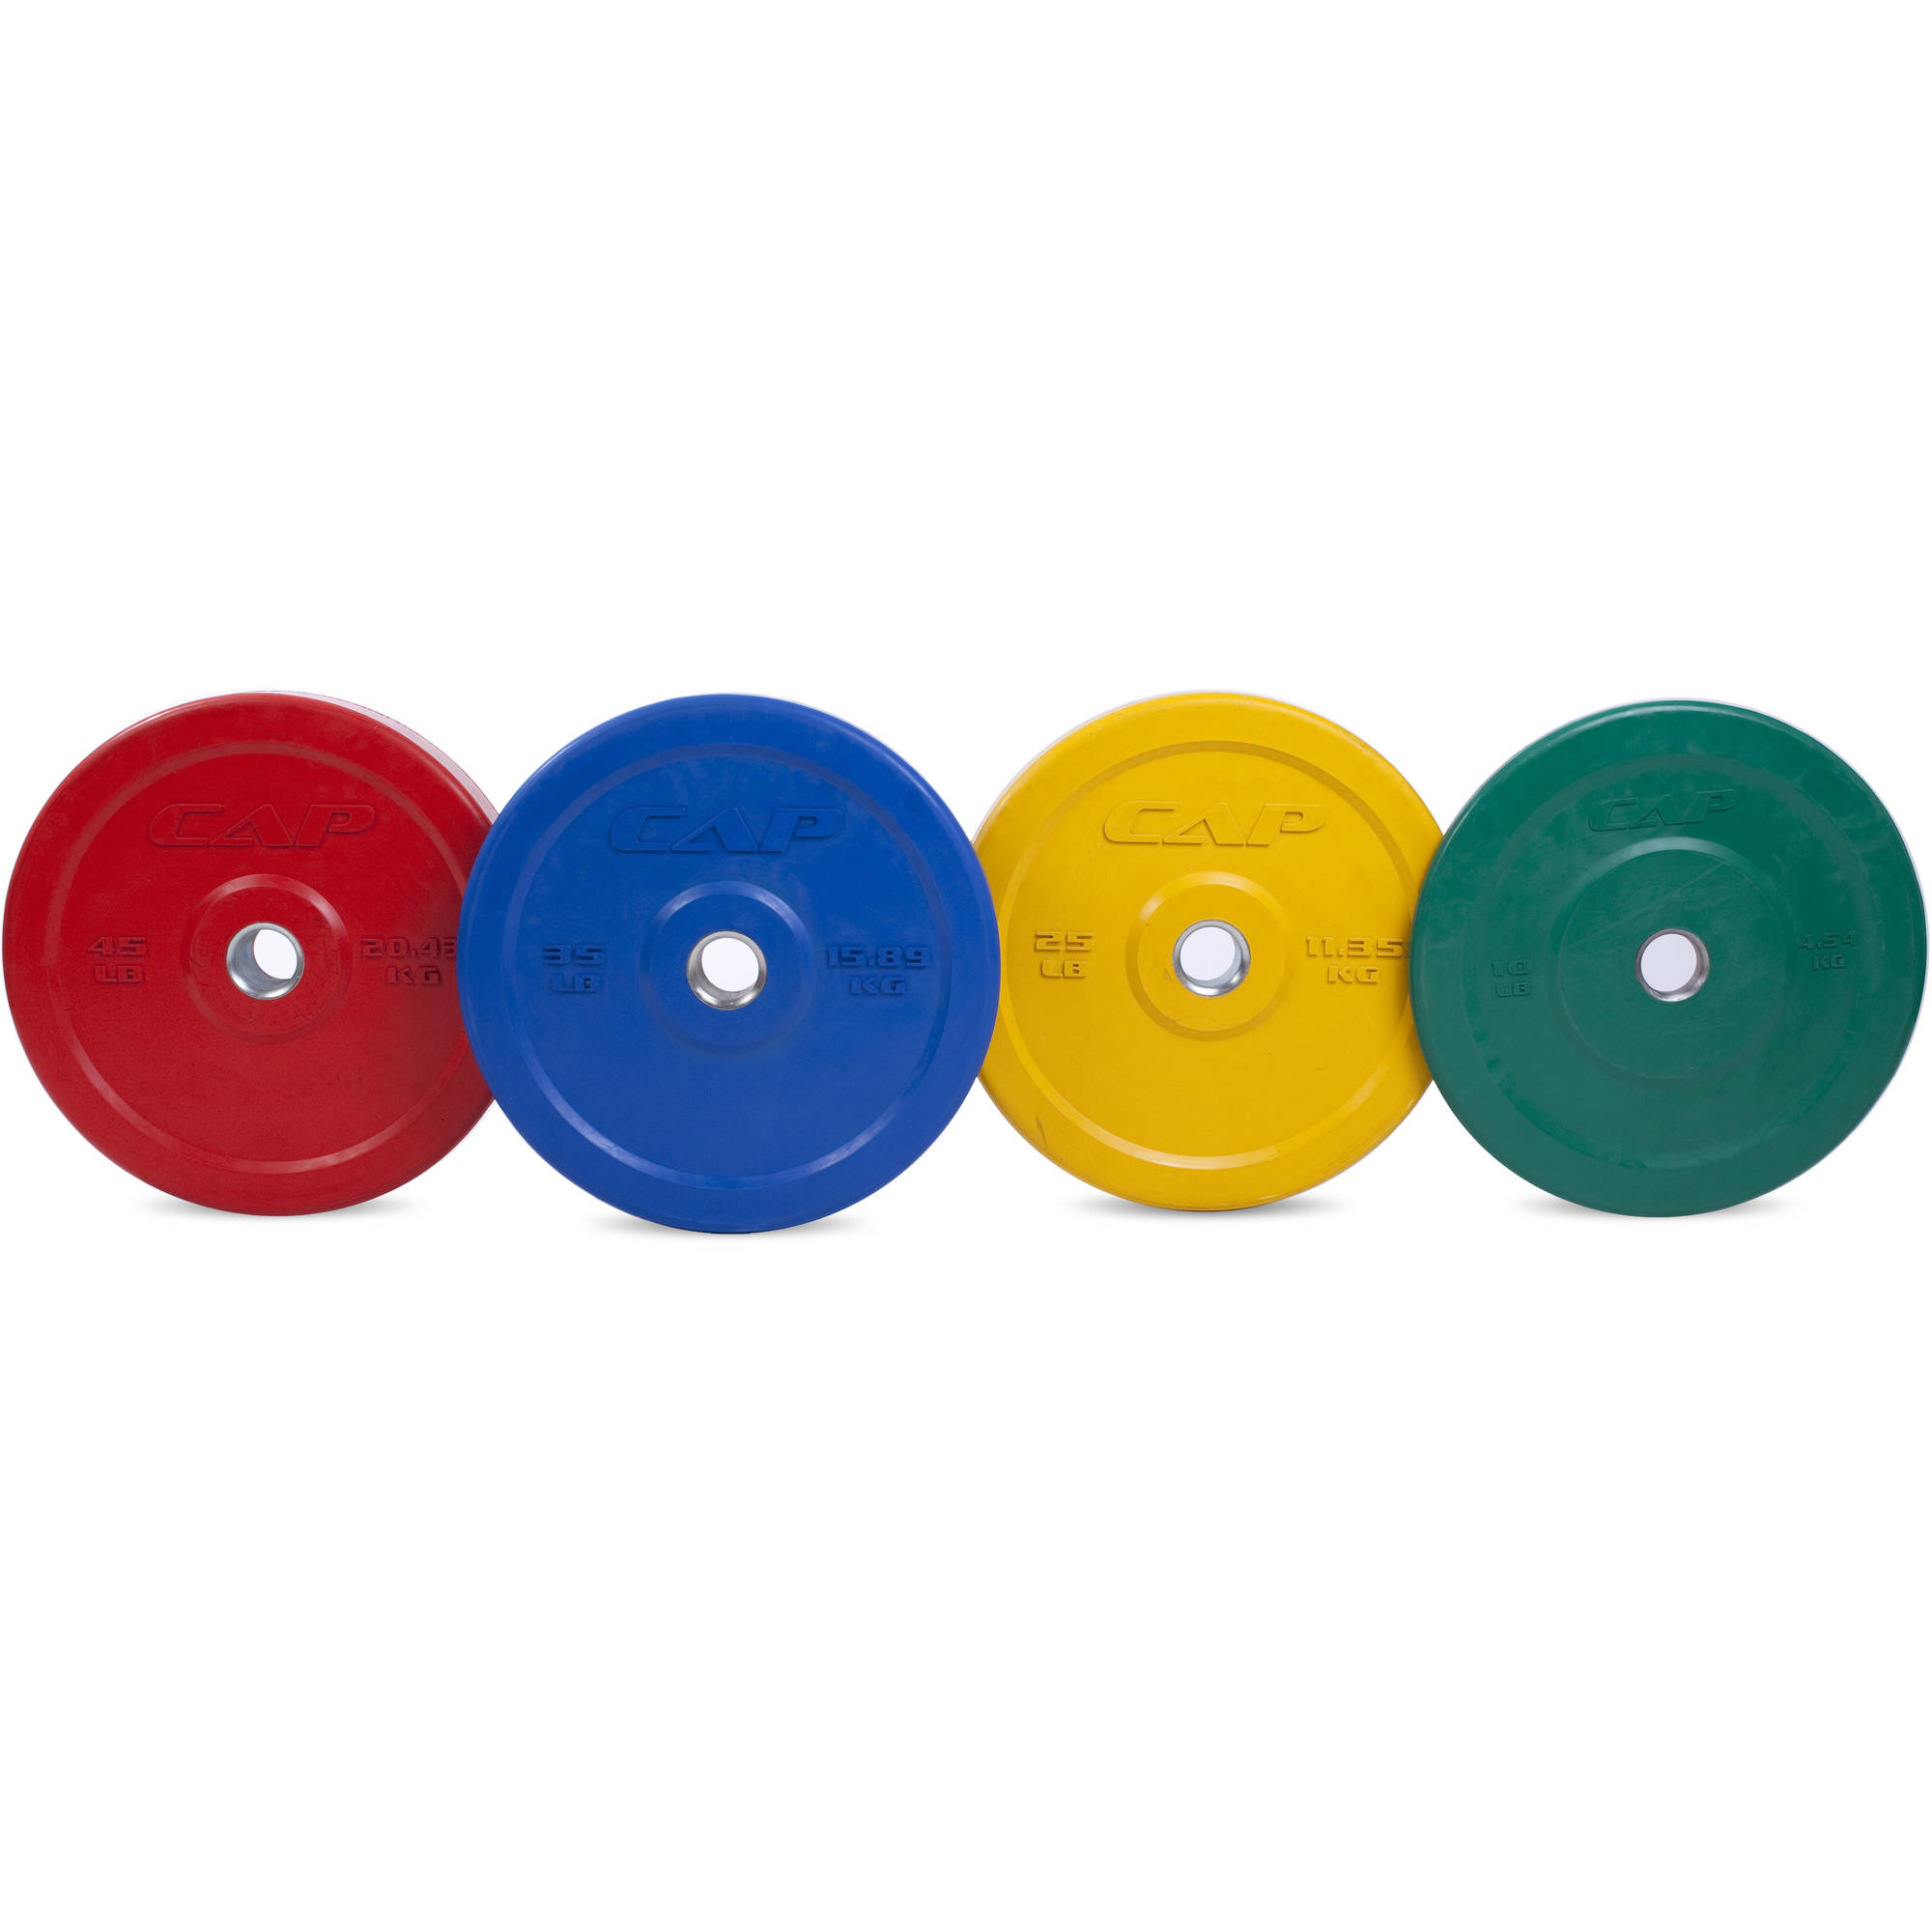 CAP Barbell Rubber Olympic Bumper Plate, 10lbs-45lbs